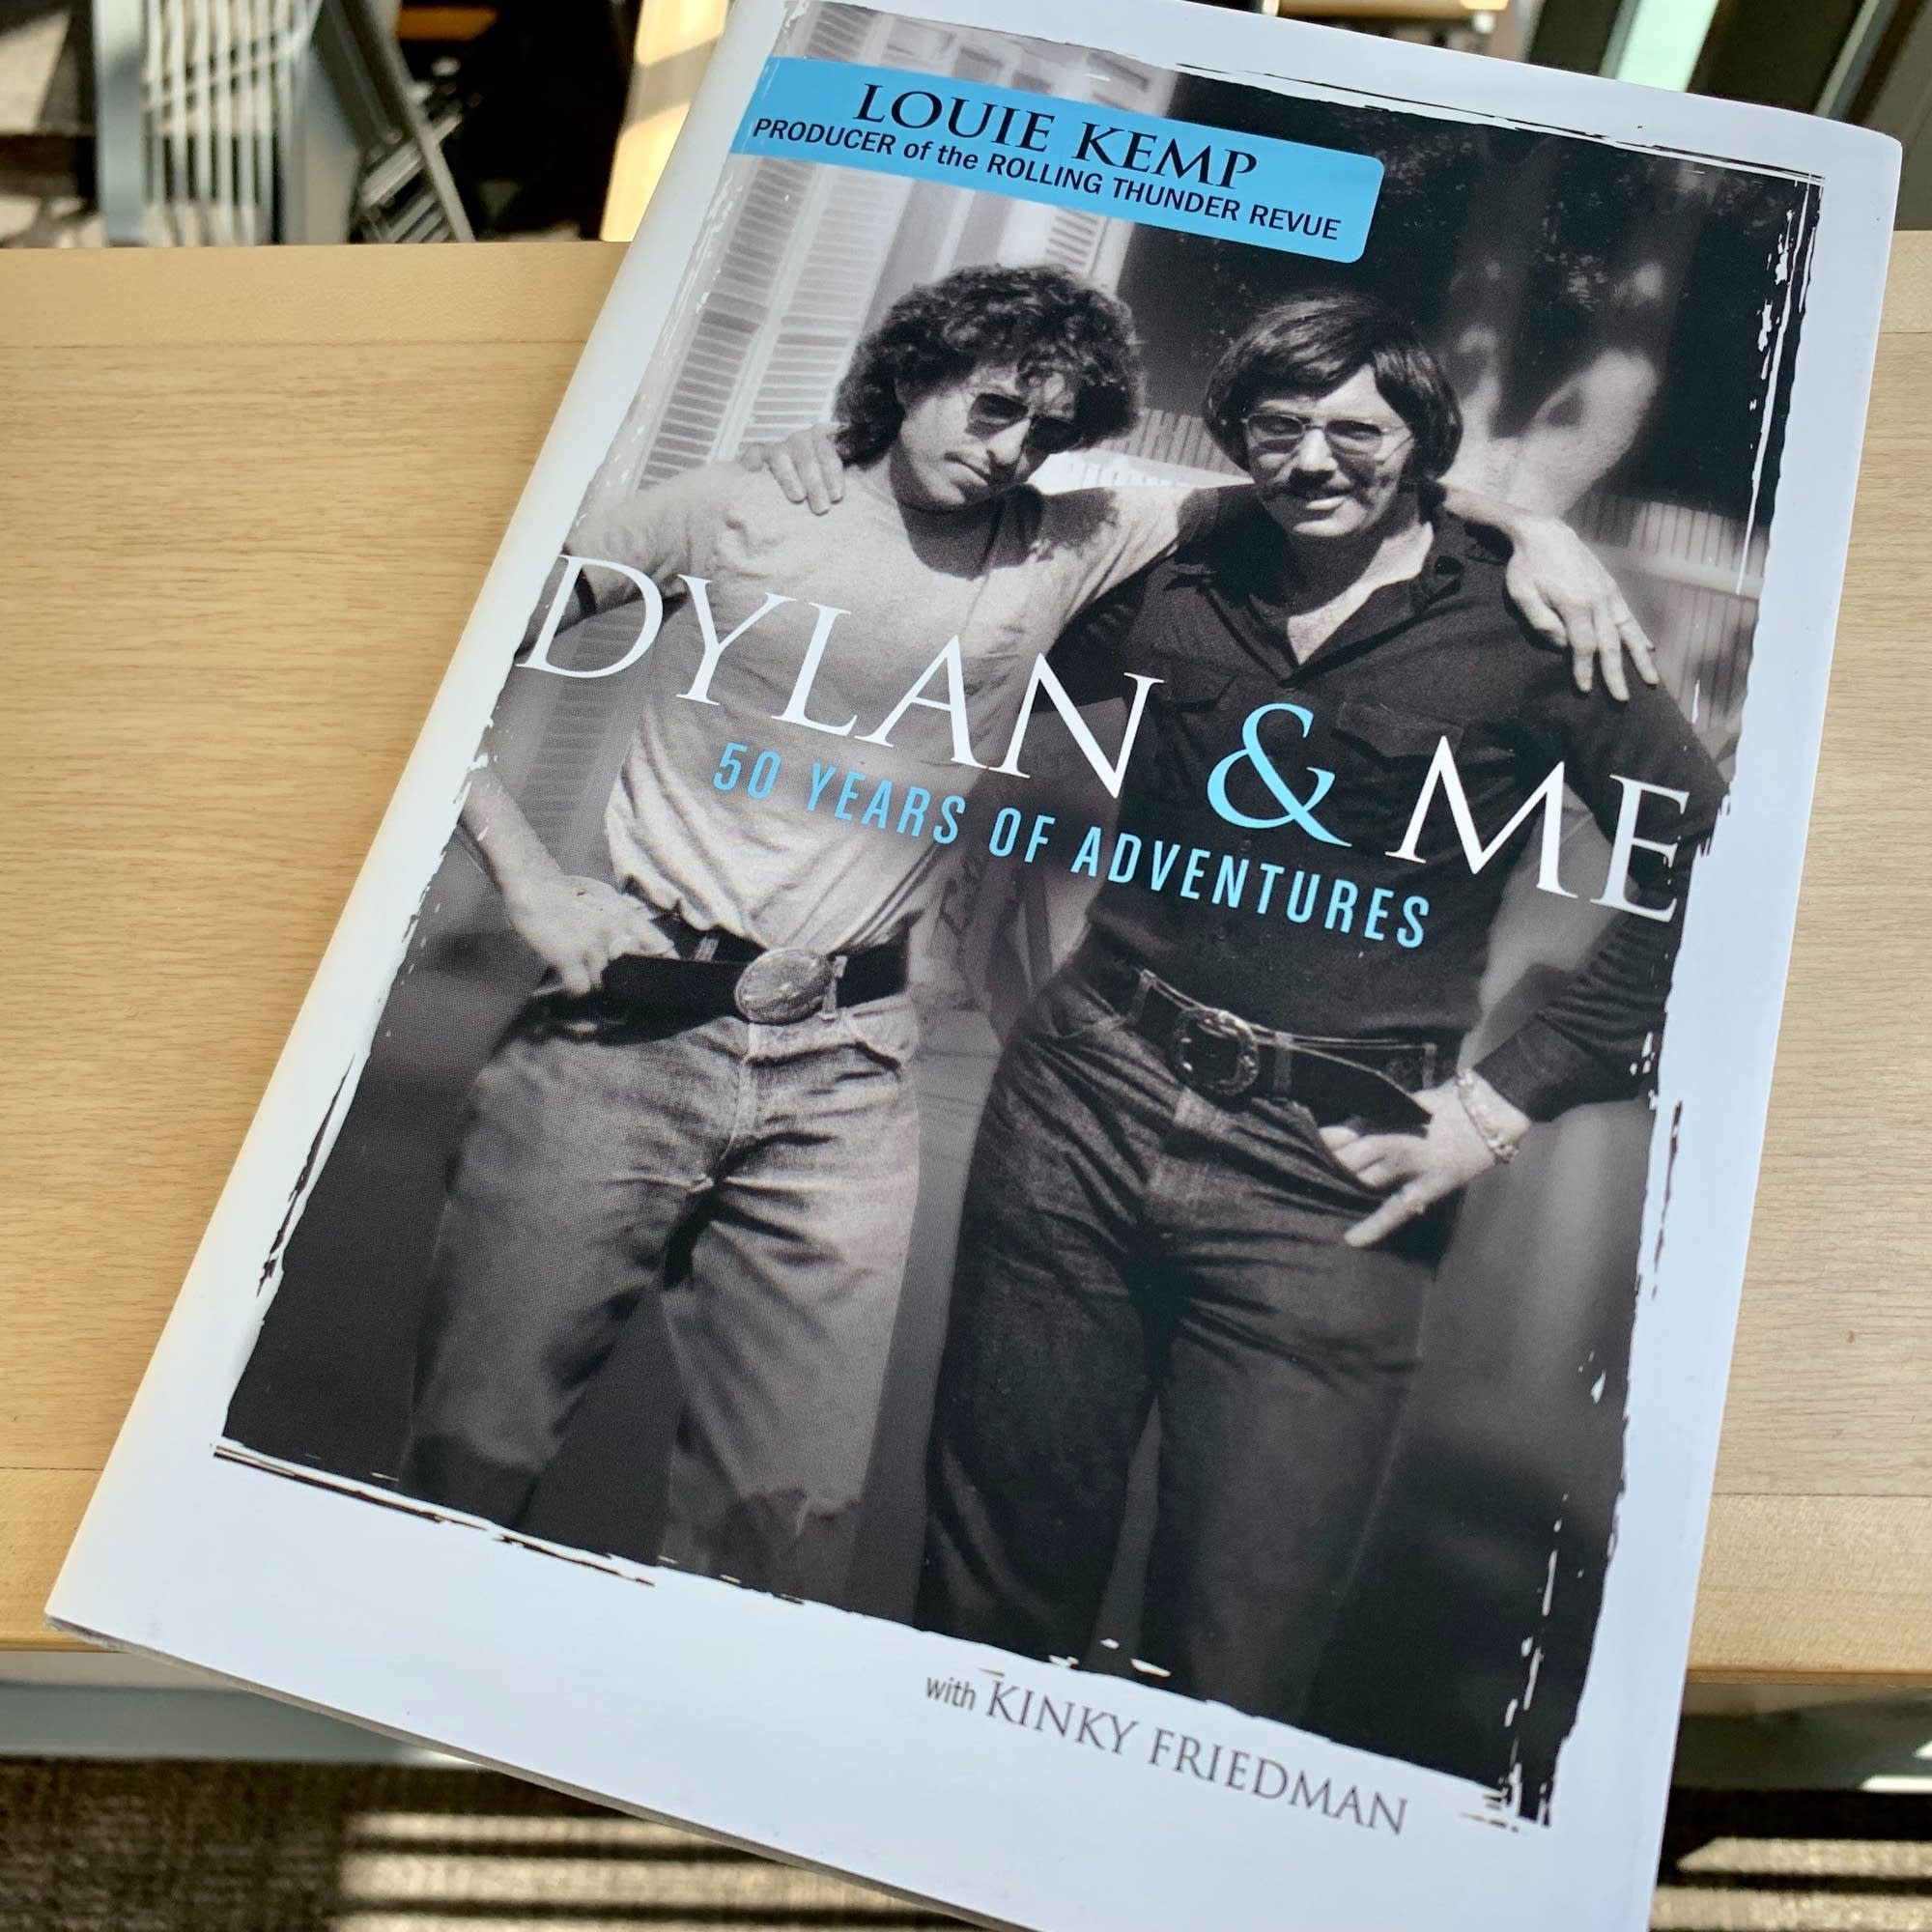 Louie Kemp's book 'Dylan & Me.'